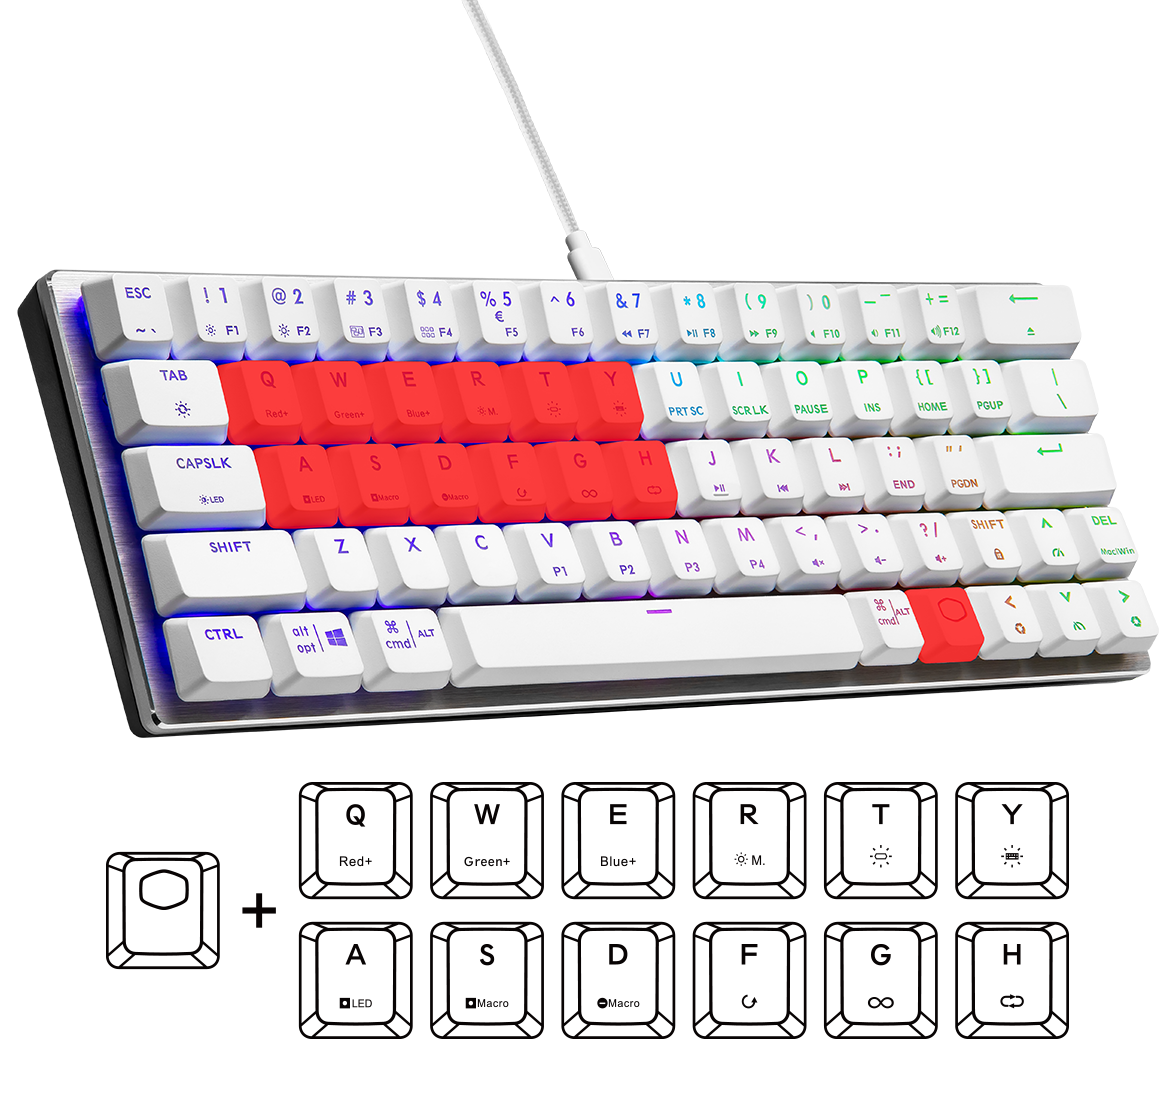 Cooler Master SK620 SILVER WHITE Low Profile Blue Switch Mechanical Gaming RGB Keyboard - US 9